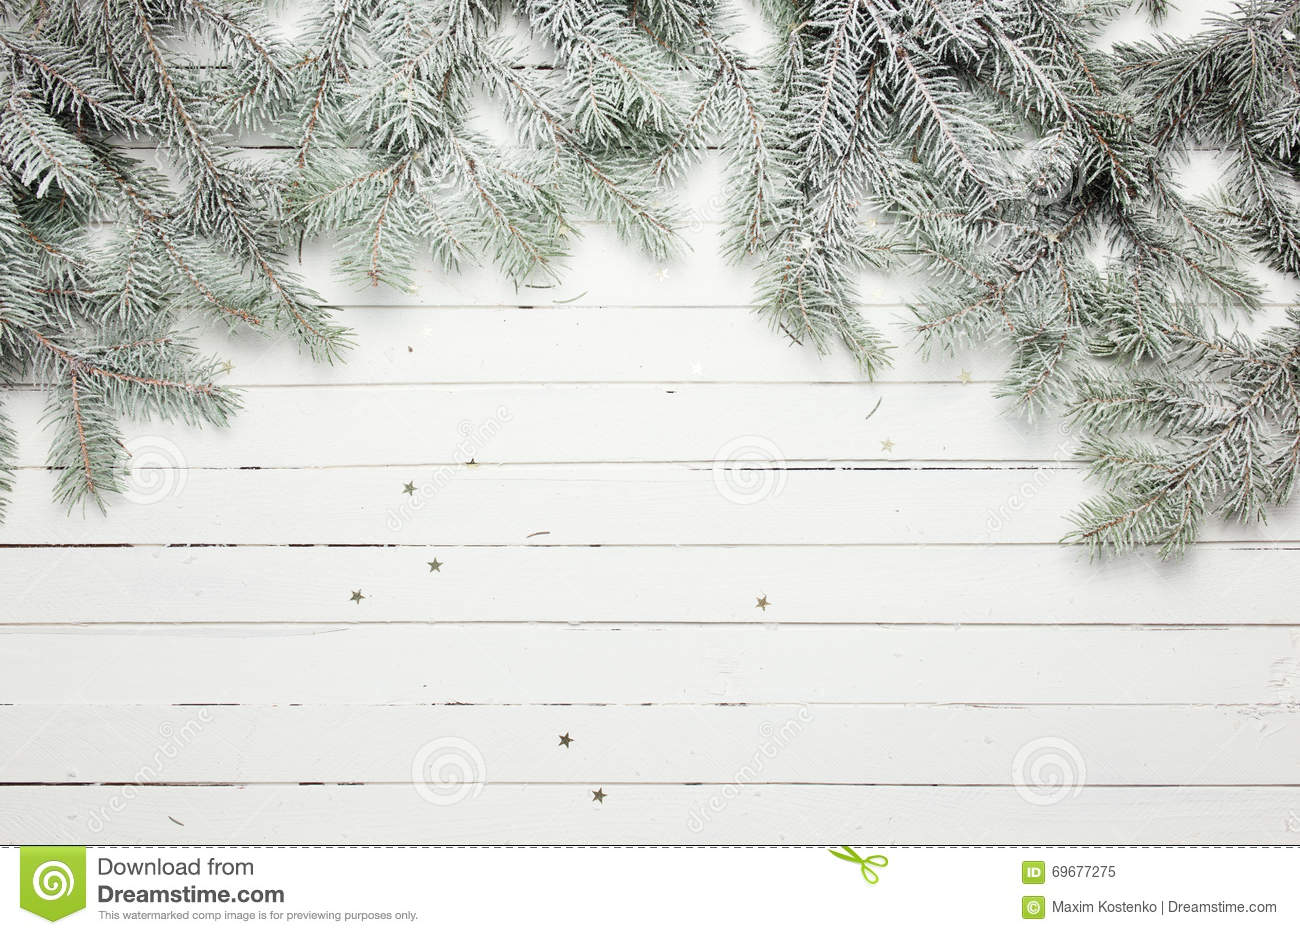 Christmas and New Year decoration composition. Top view of fur-tree branches on wooden background with place for your